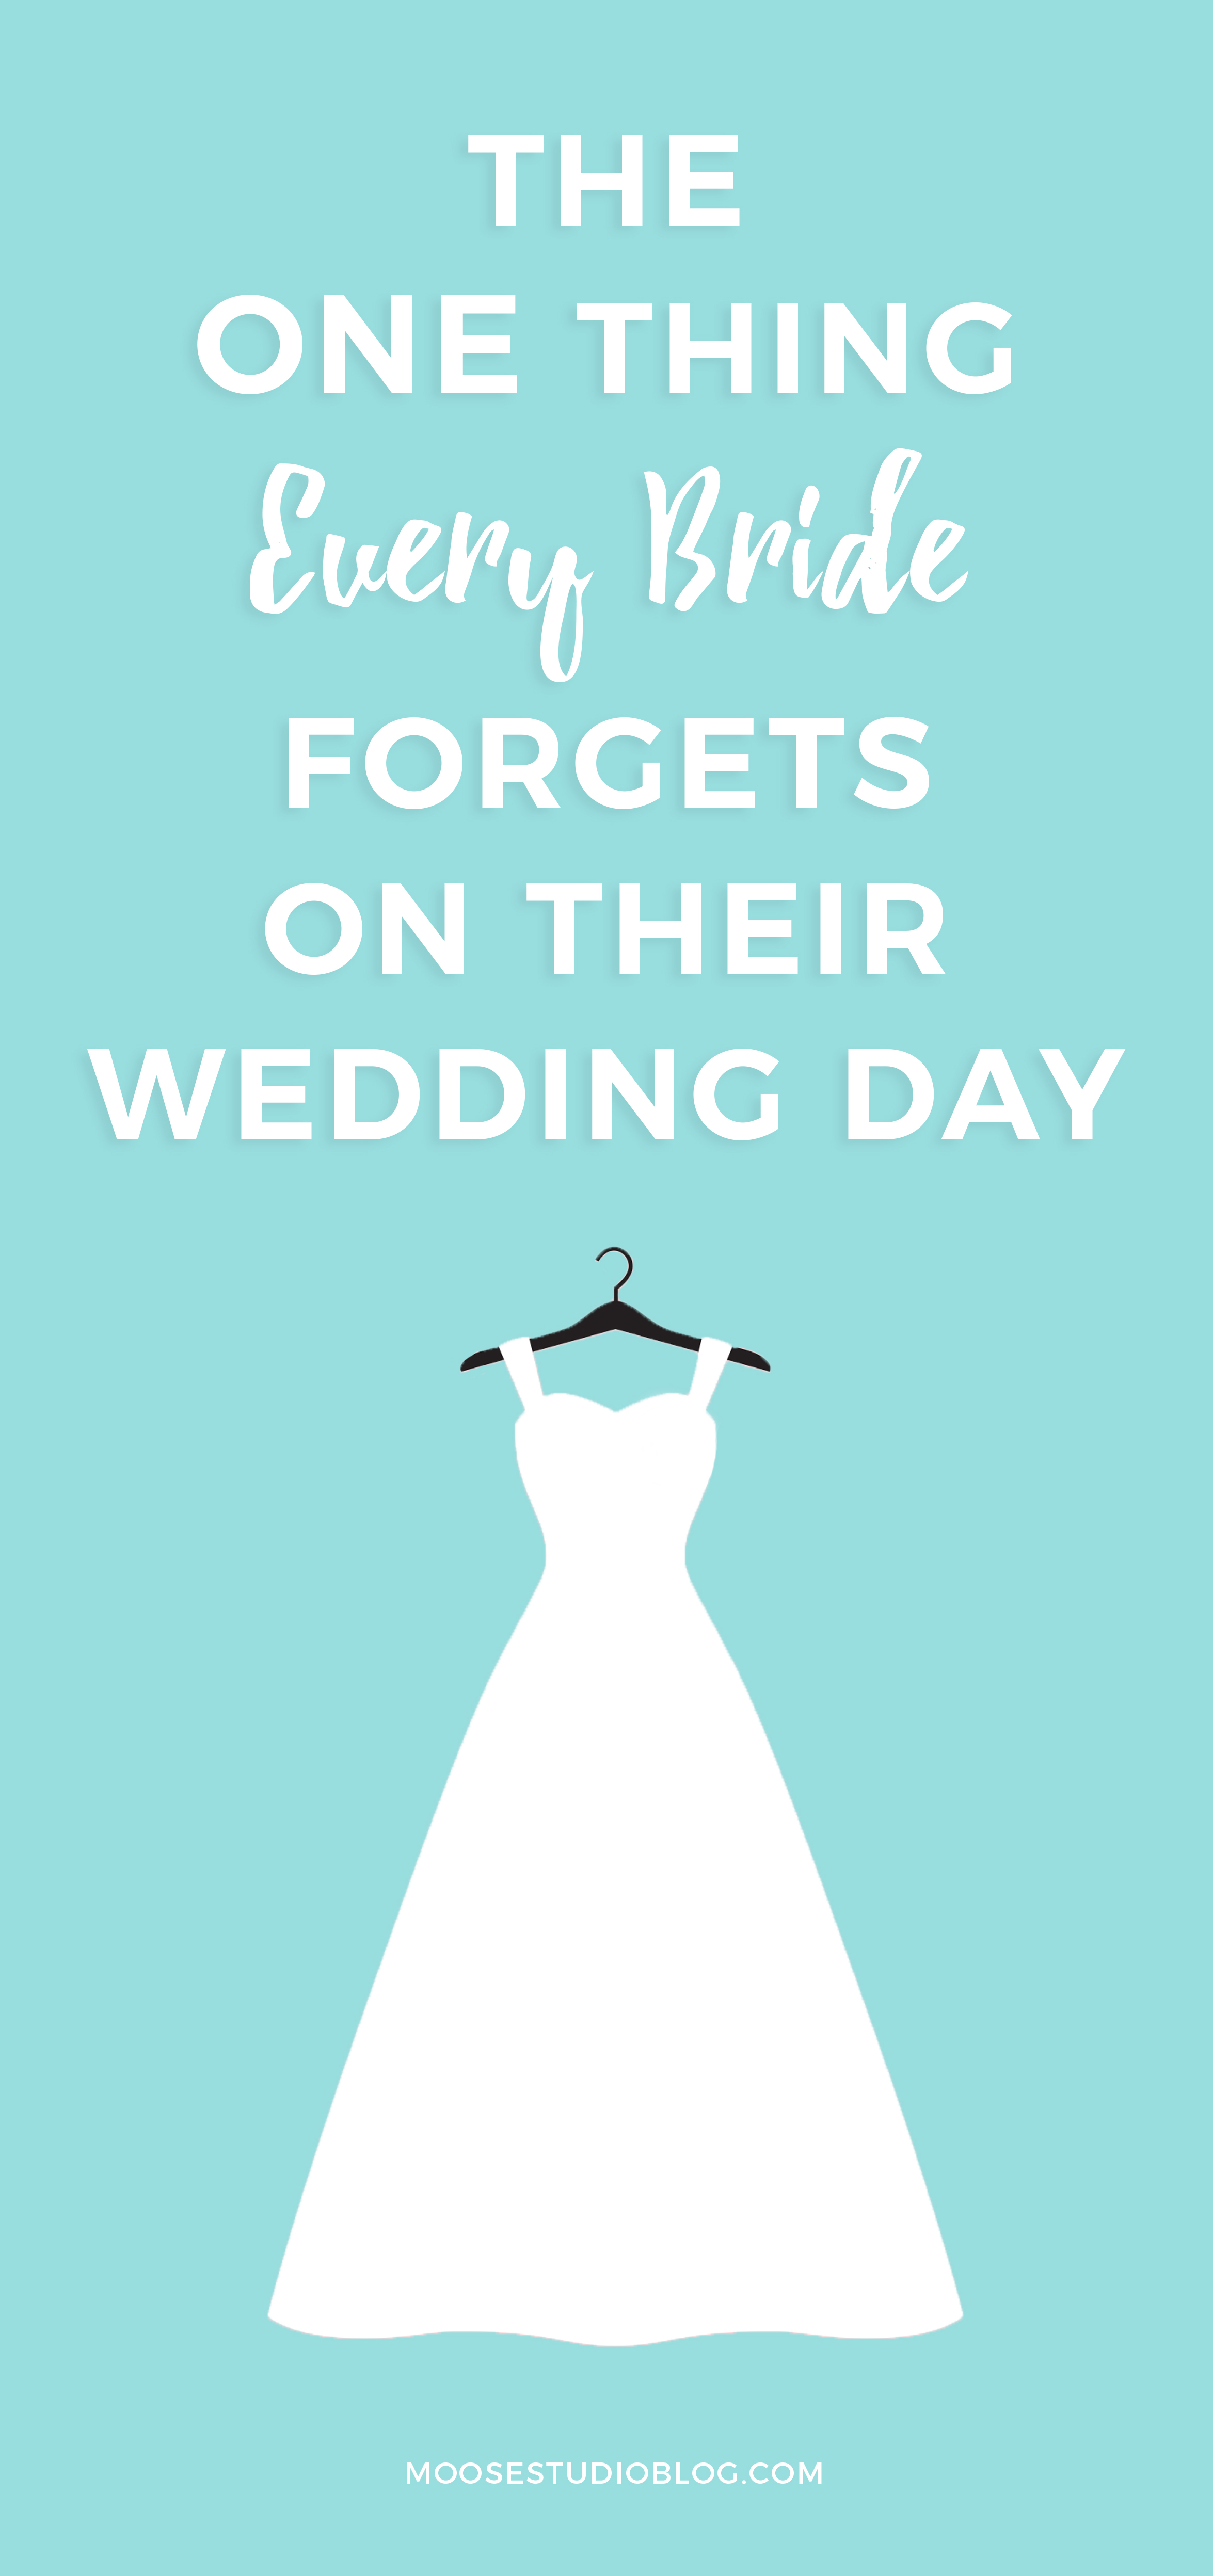 The One Thing Every Bride Forgets On Their Wedding Day